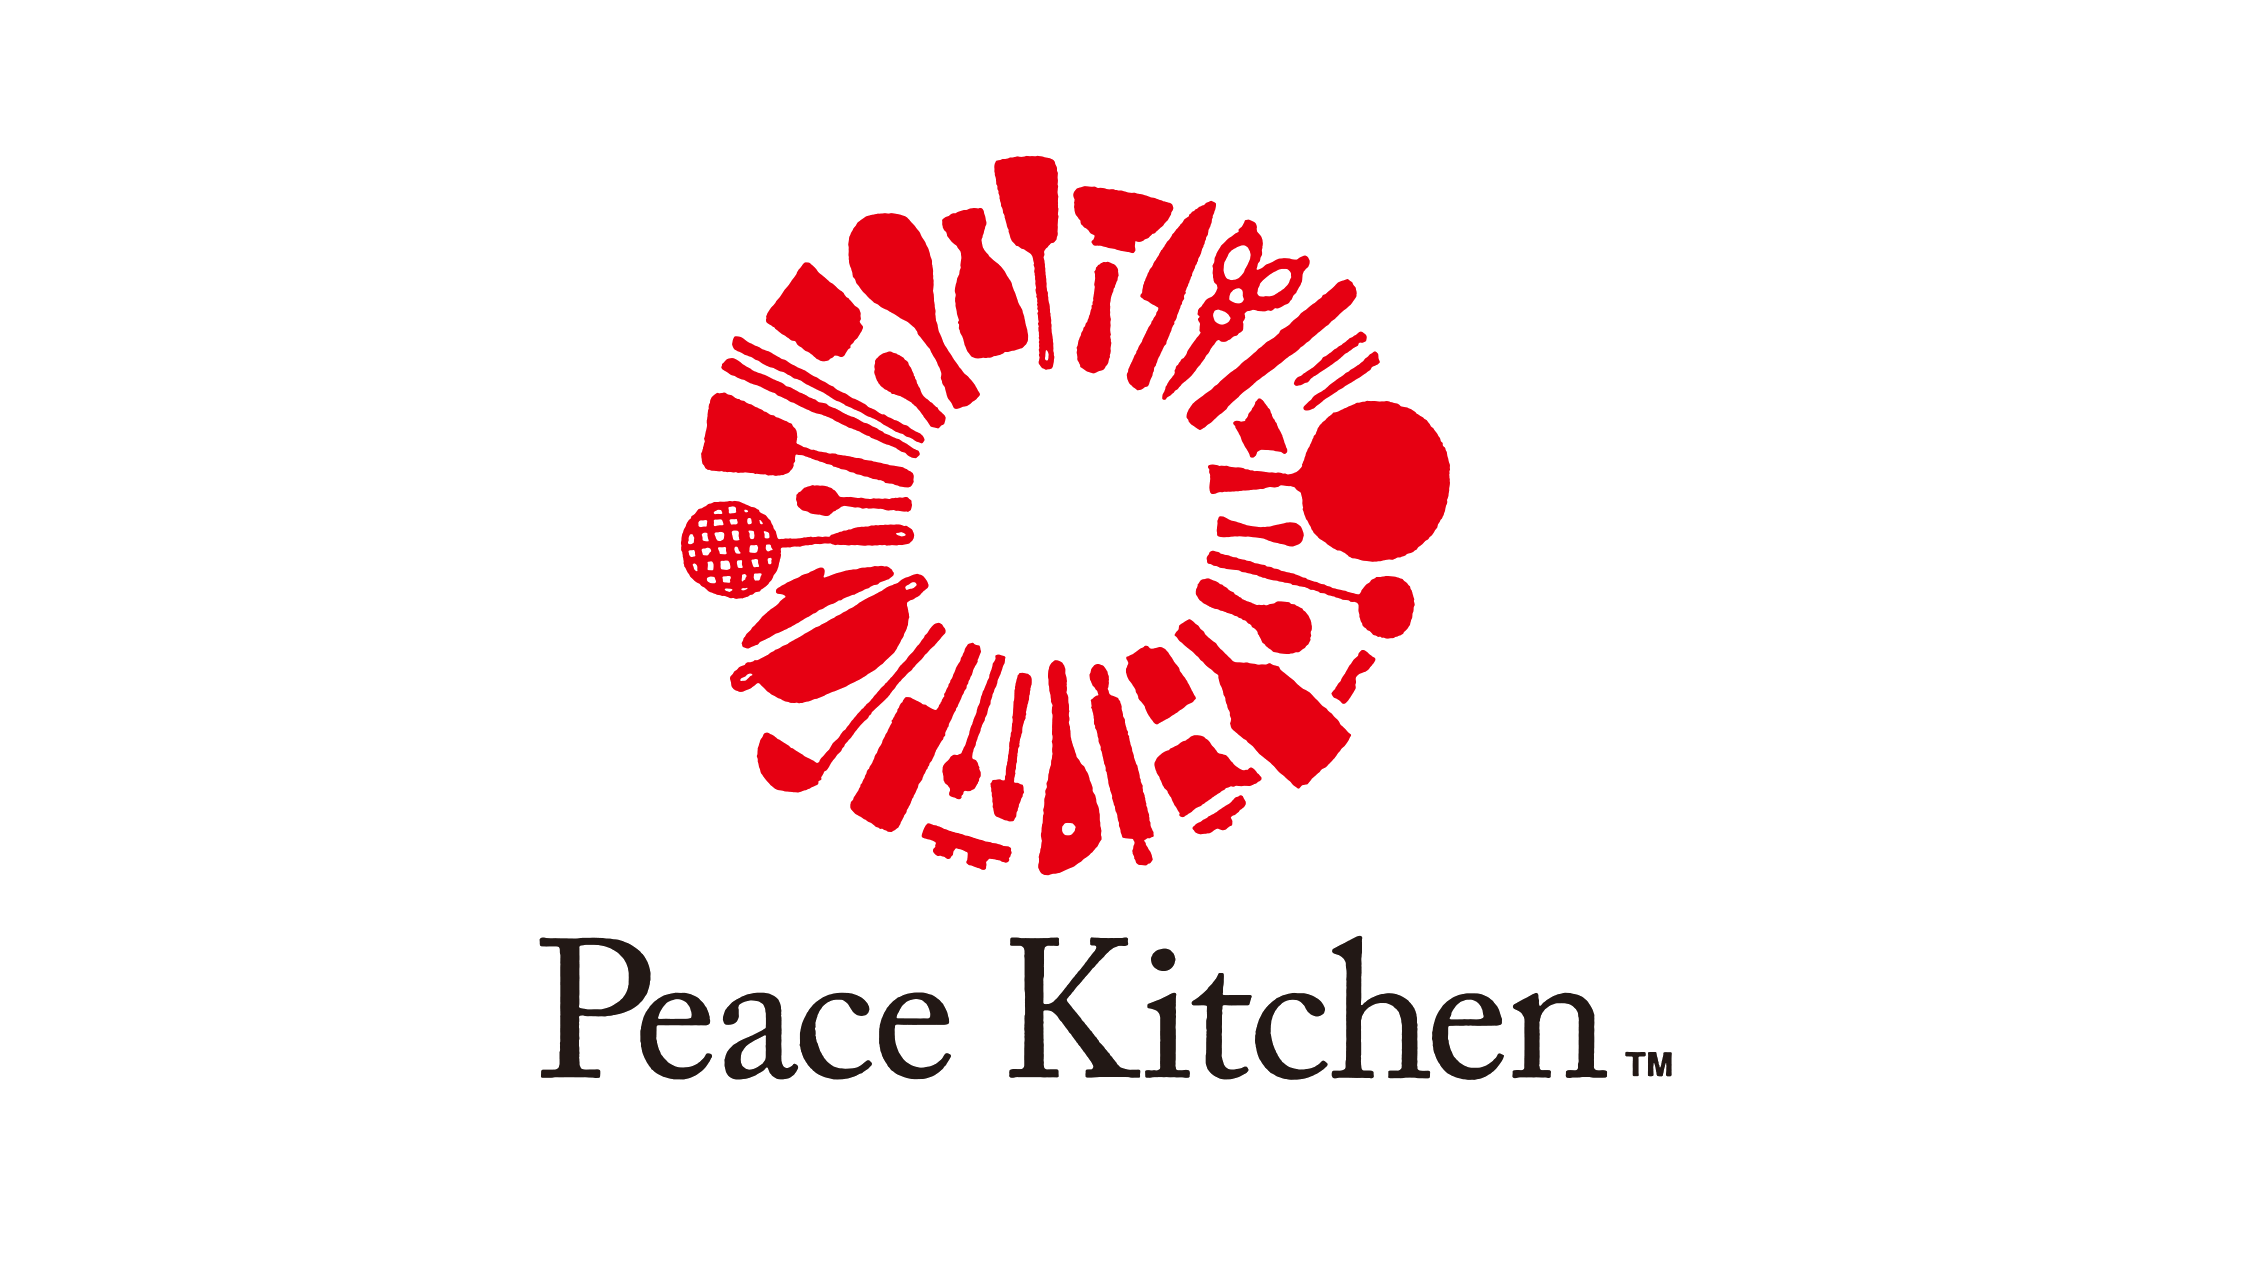 7. peace kitchen_LOGO.png